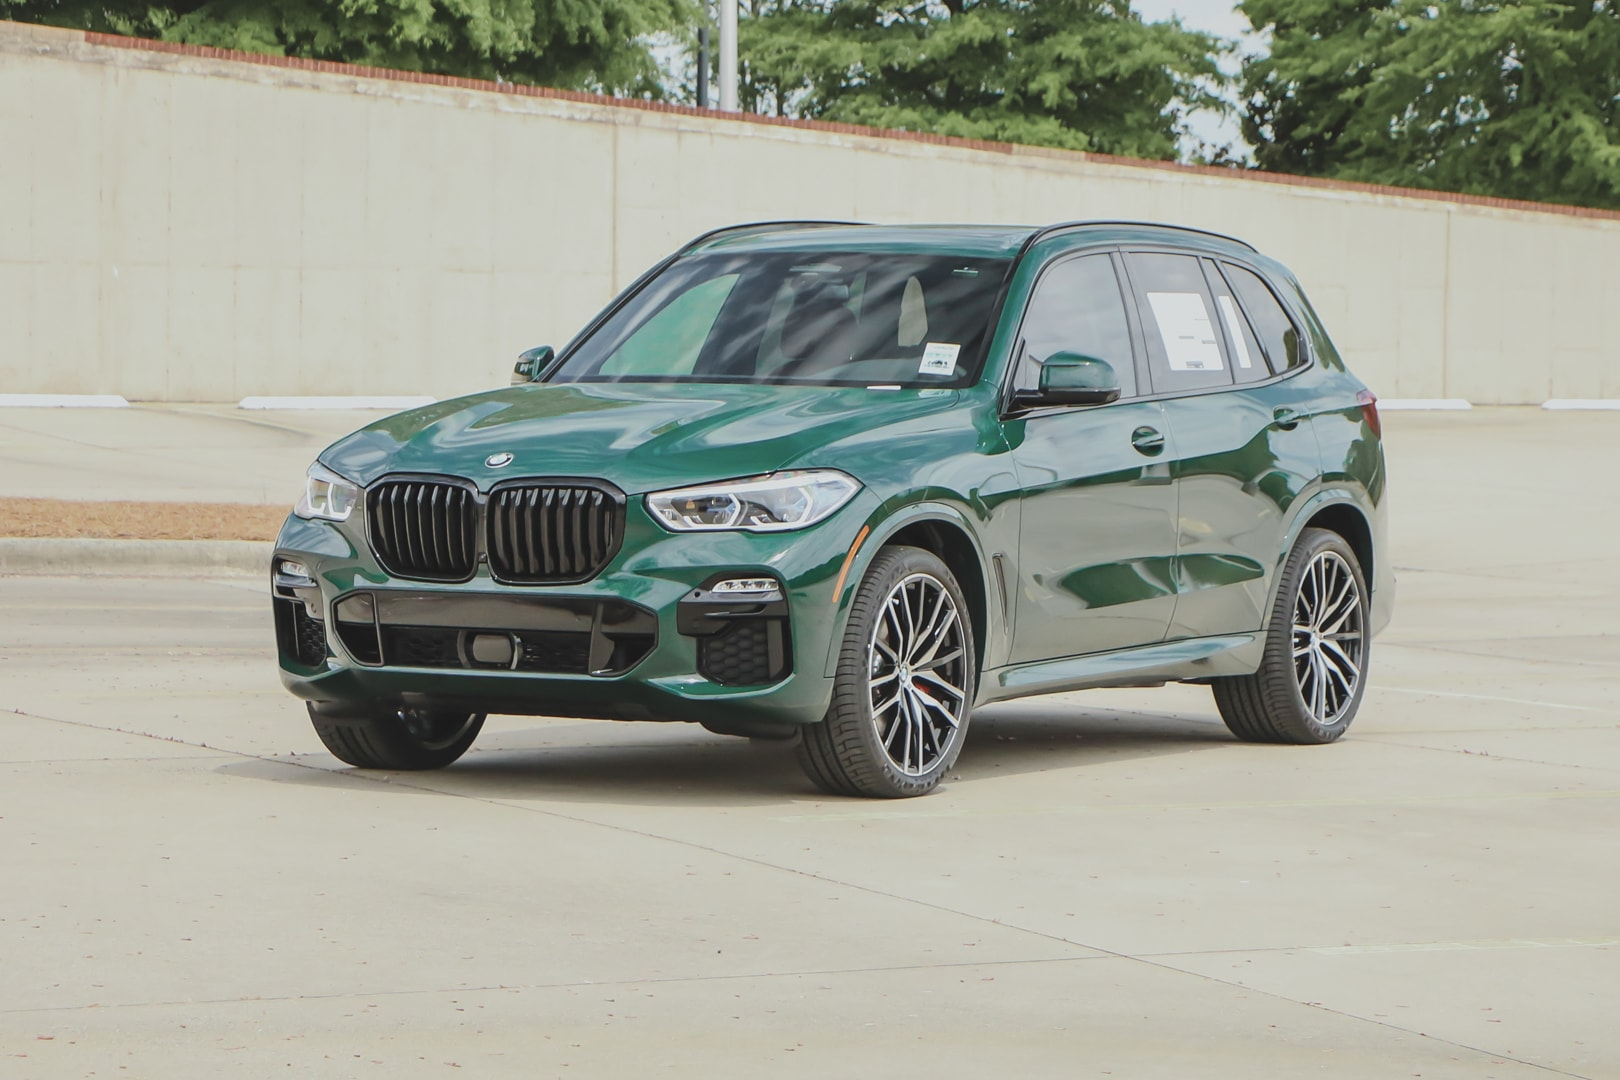 BMW X5 British Racing Green 6 of 21